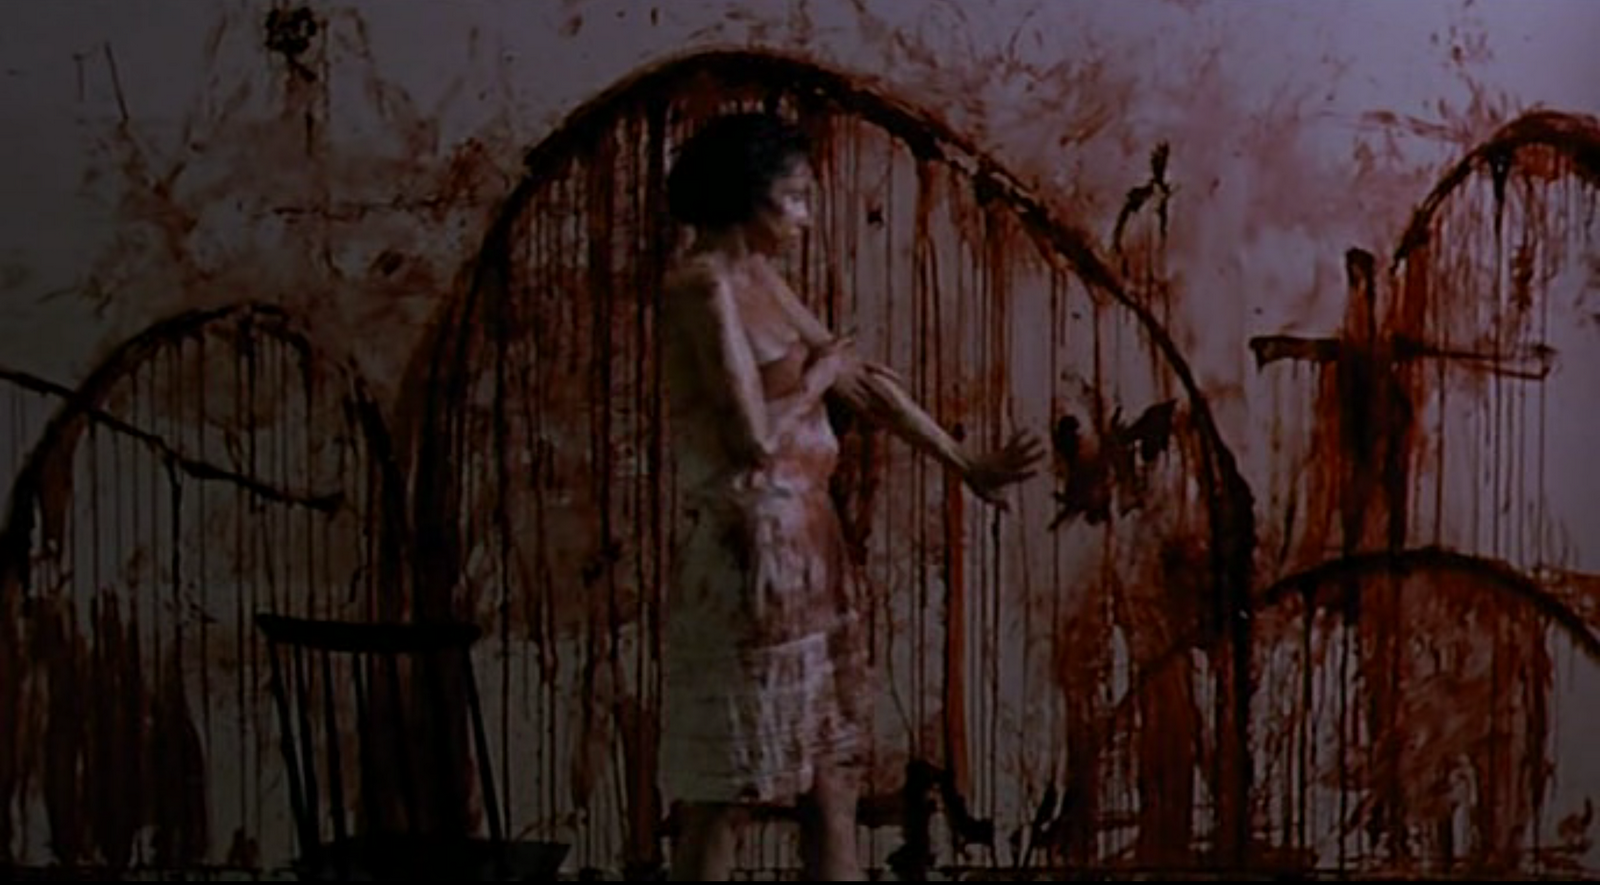 Movie-Trouble-every-day-Claire-Denis-Beatrice-Dalle-2001-www.lylybye.blogspot.com_6